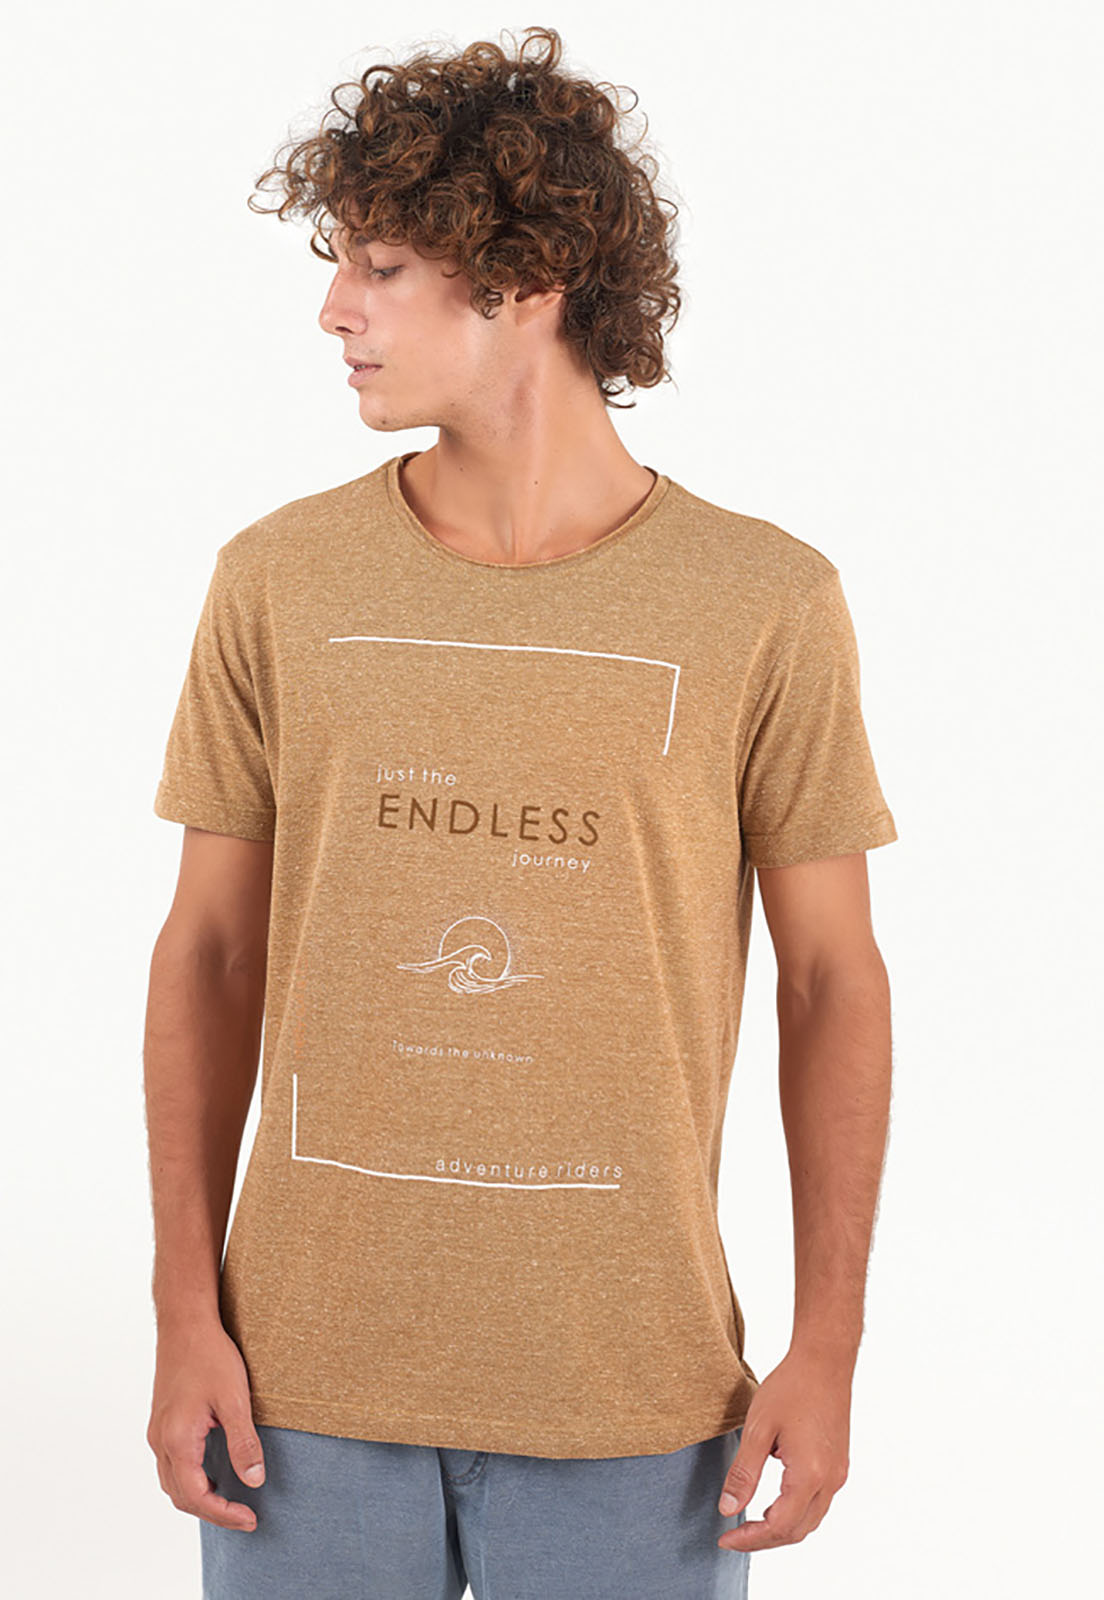 T-shirt Endless journey melty  - melty surf & Co.